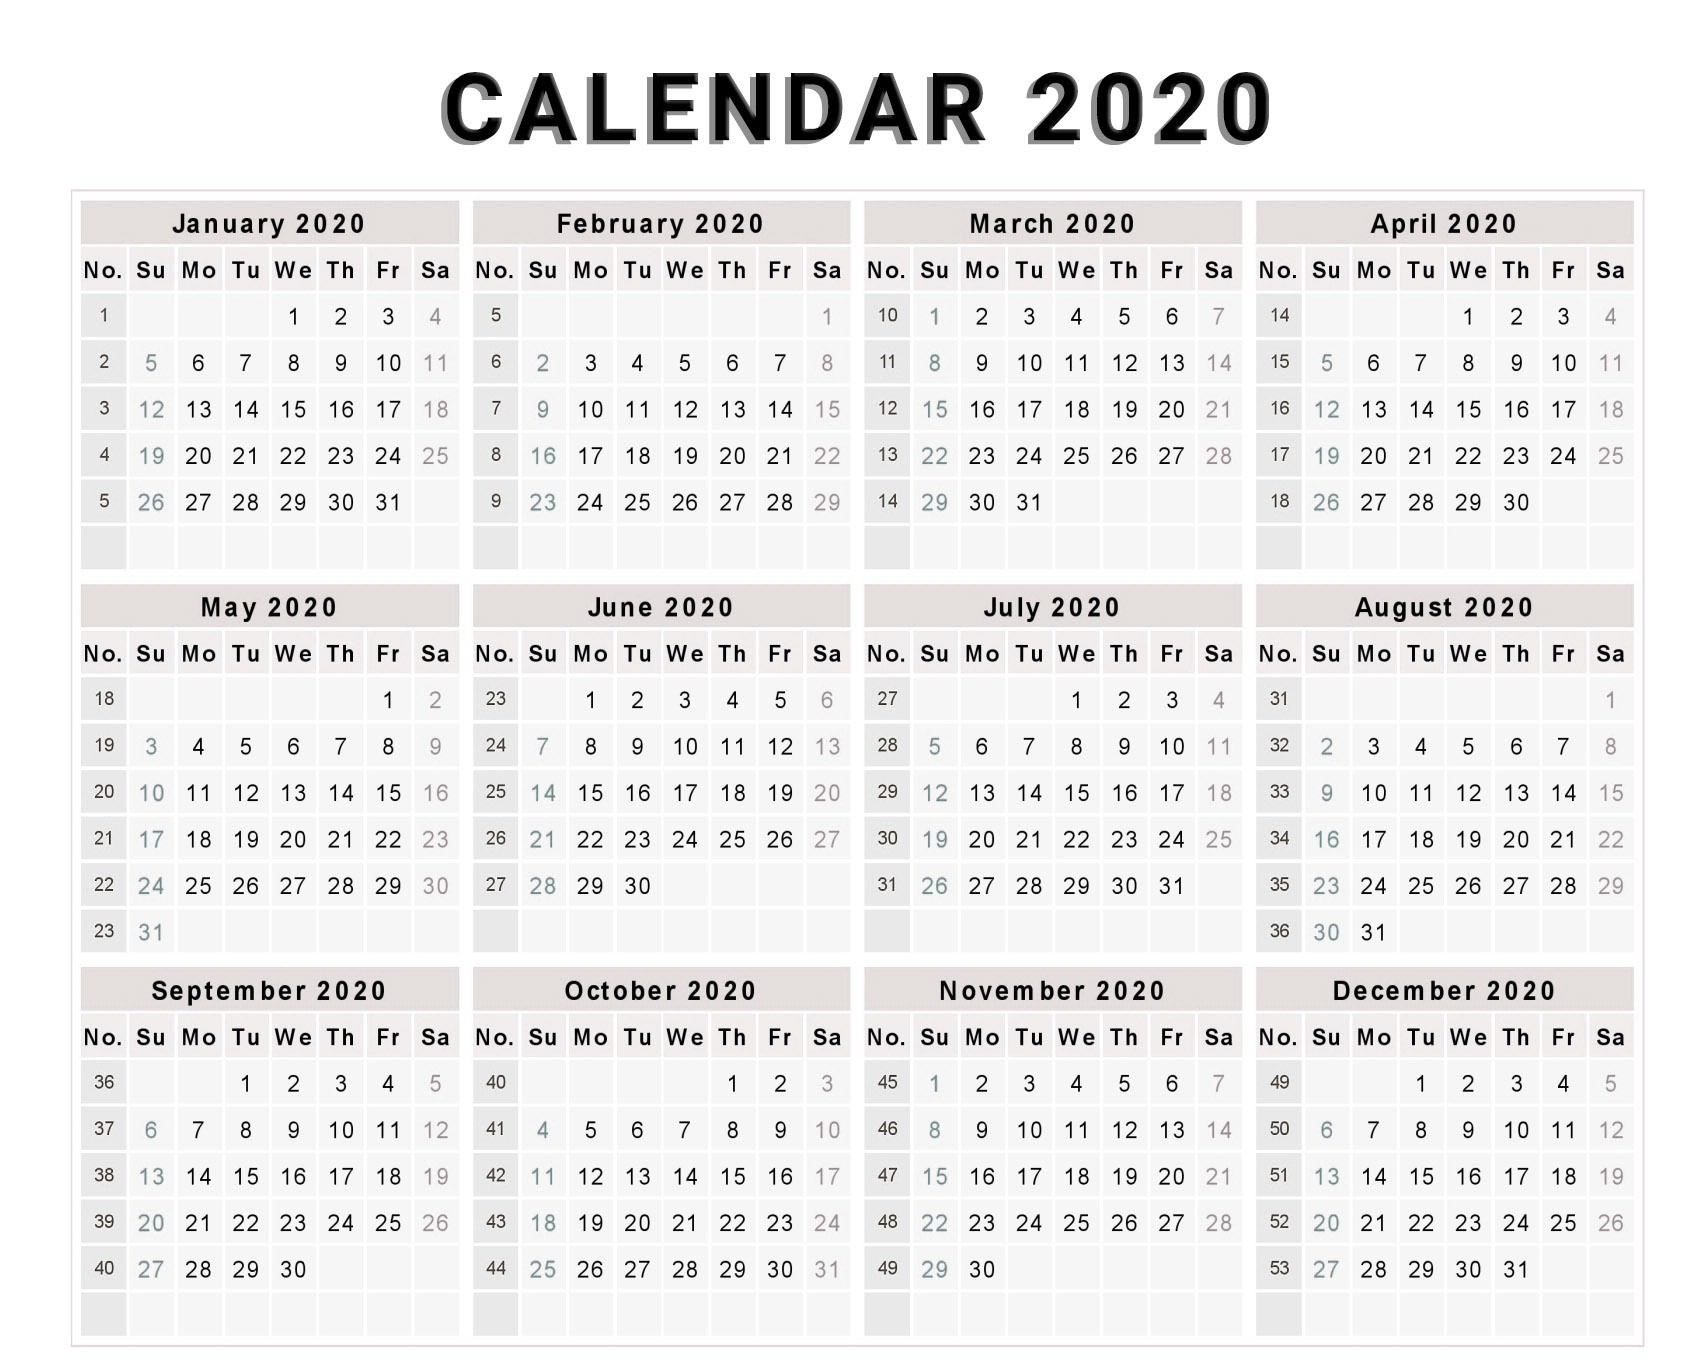 Calendar 2020 Free Template With Weeks